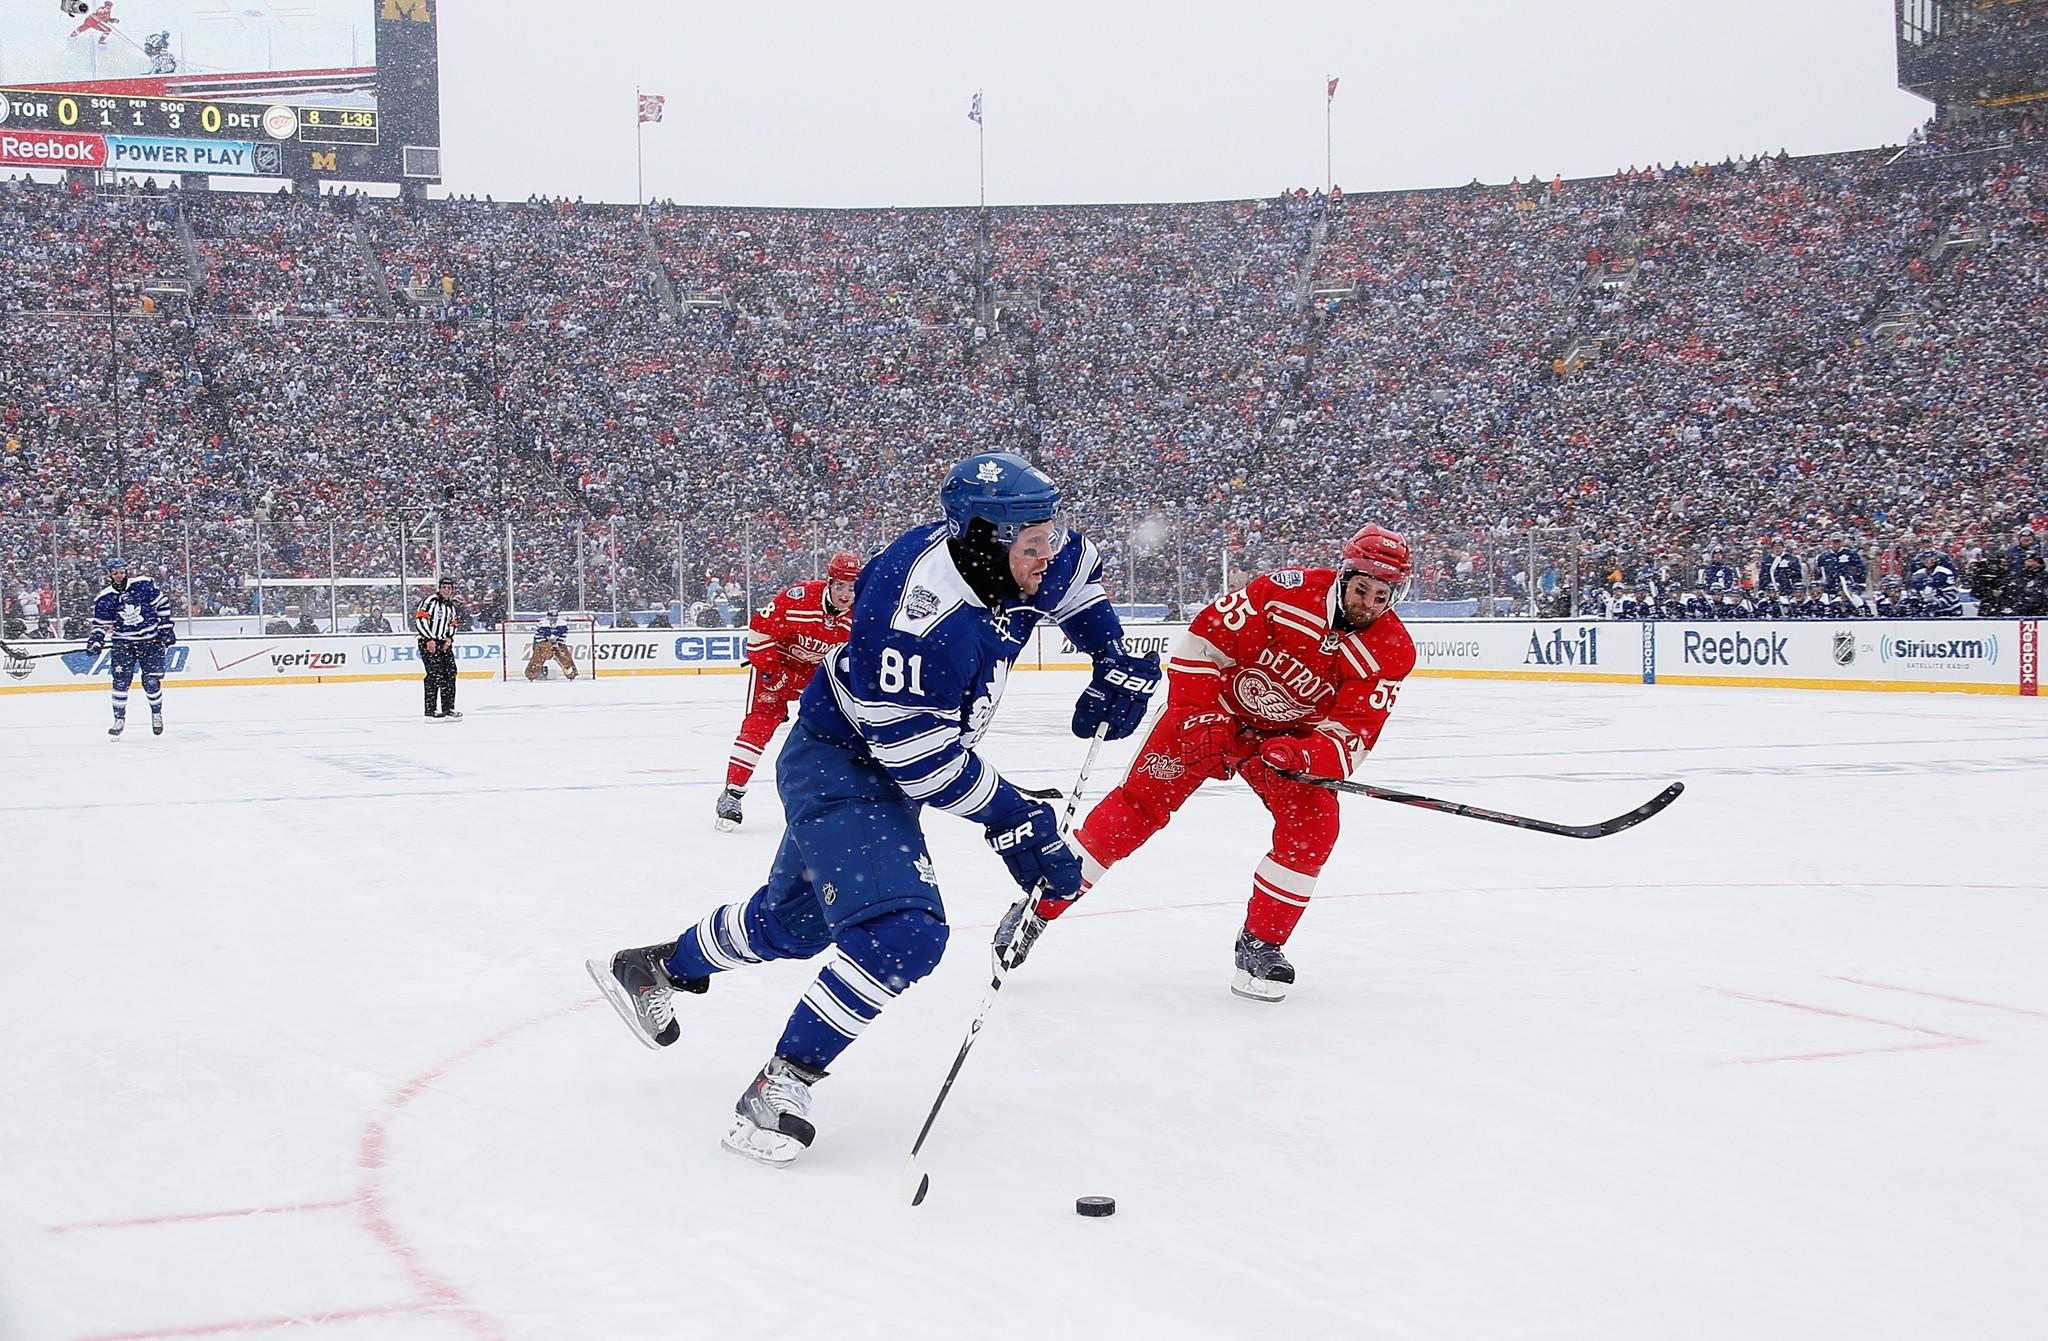 Phil Kessel of the Toronto Maple Leafs heads up ice while Niklas Kronwall of the Detroit Red Wings gives chase.